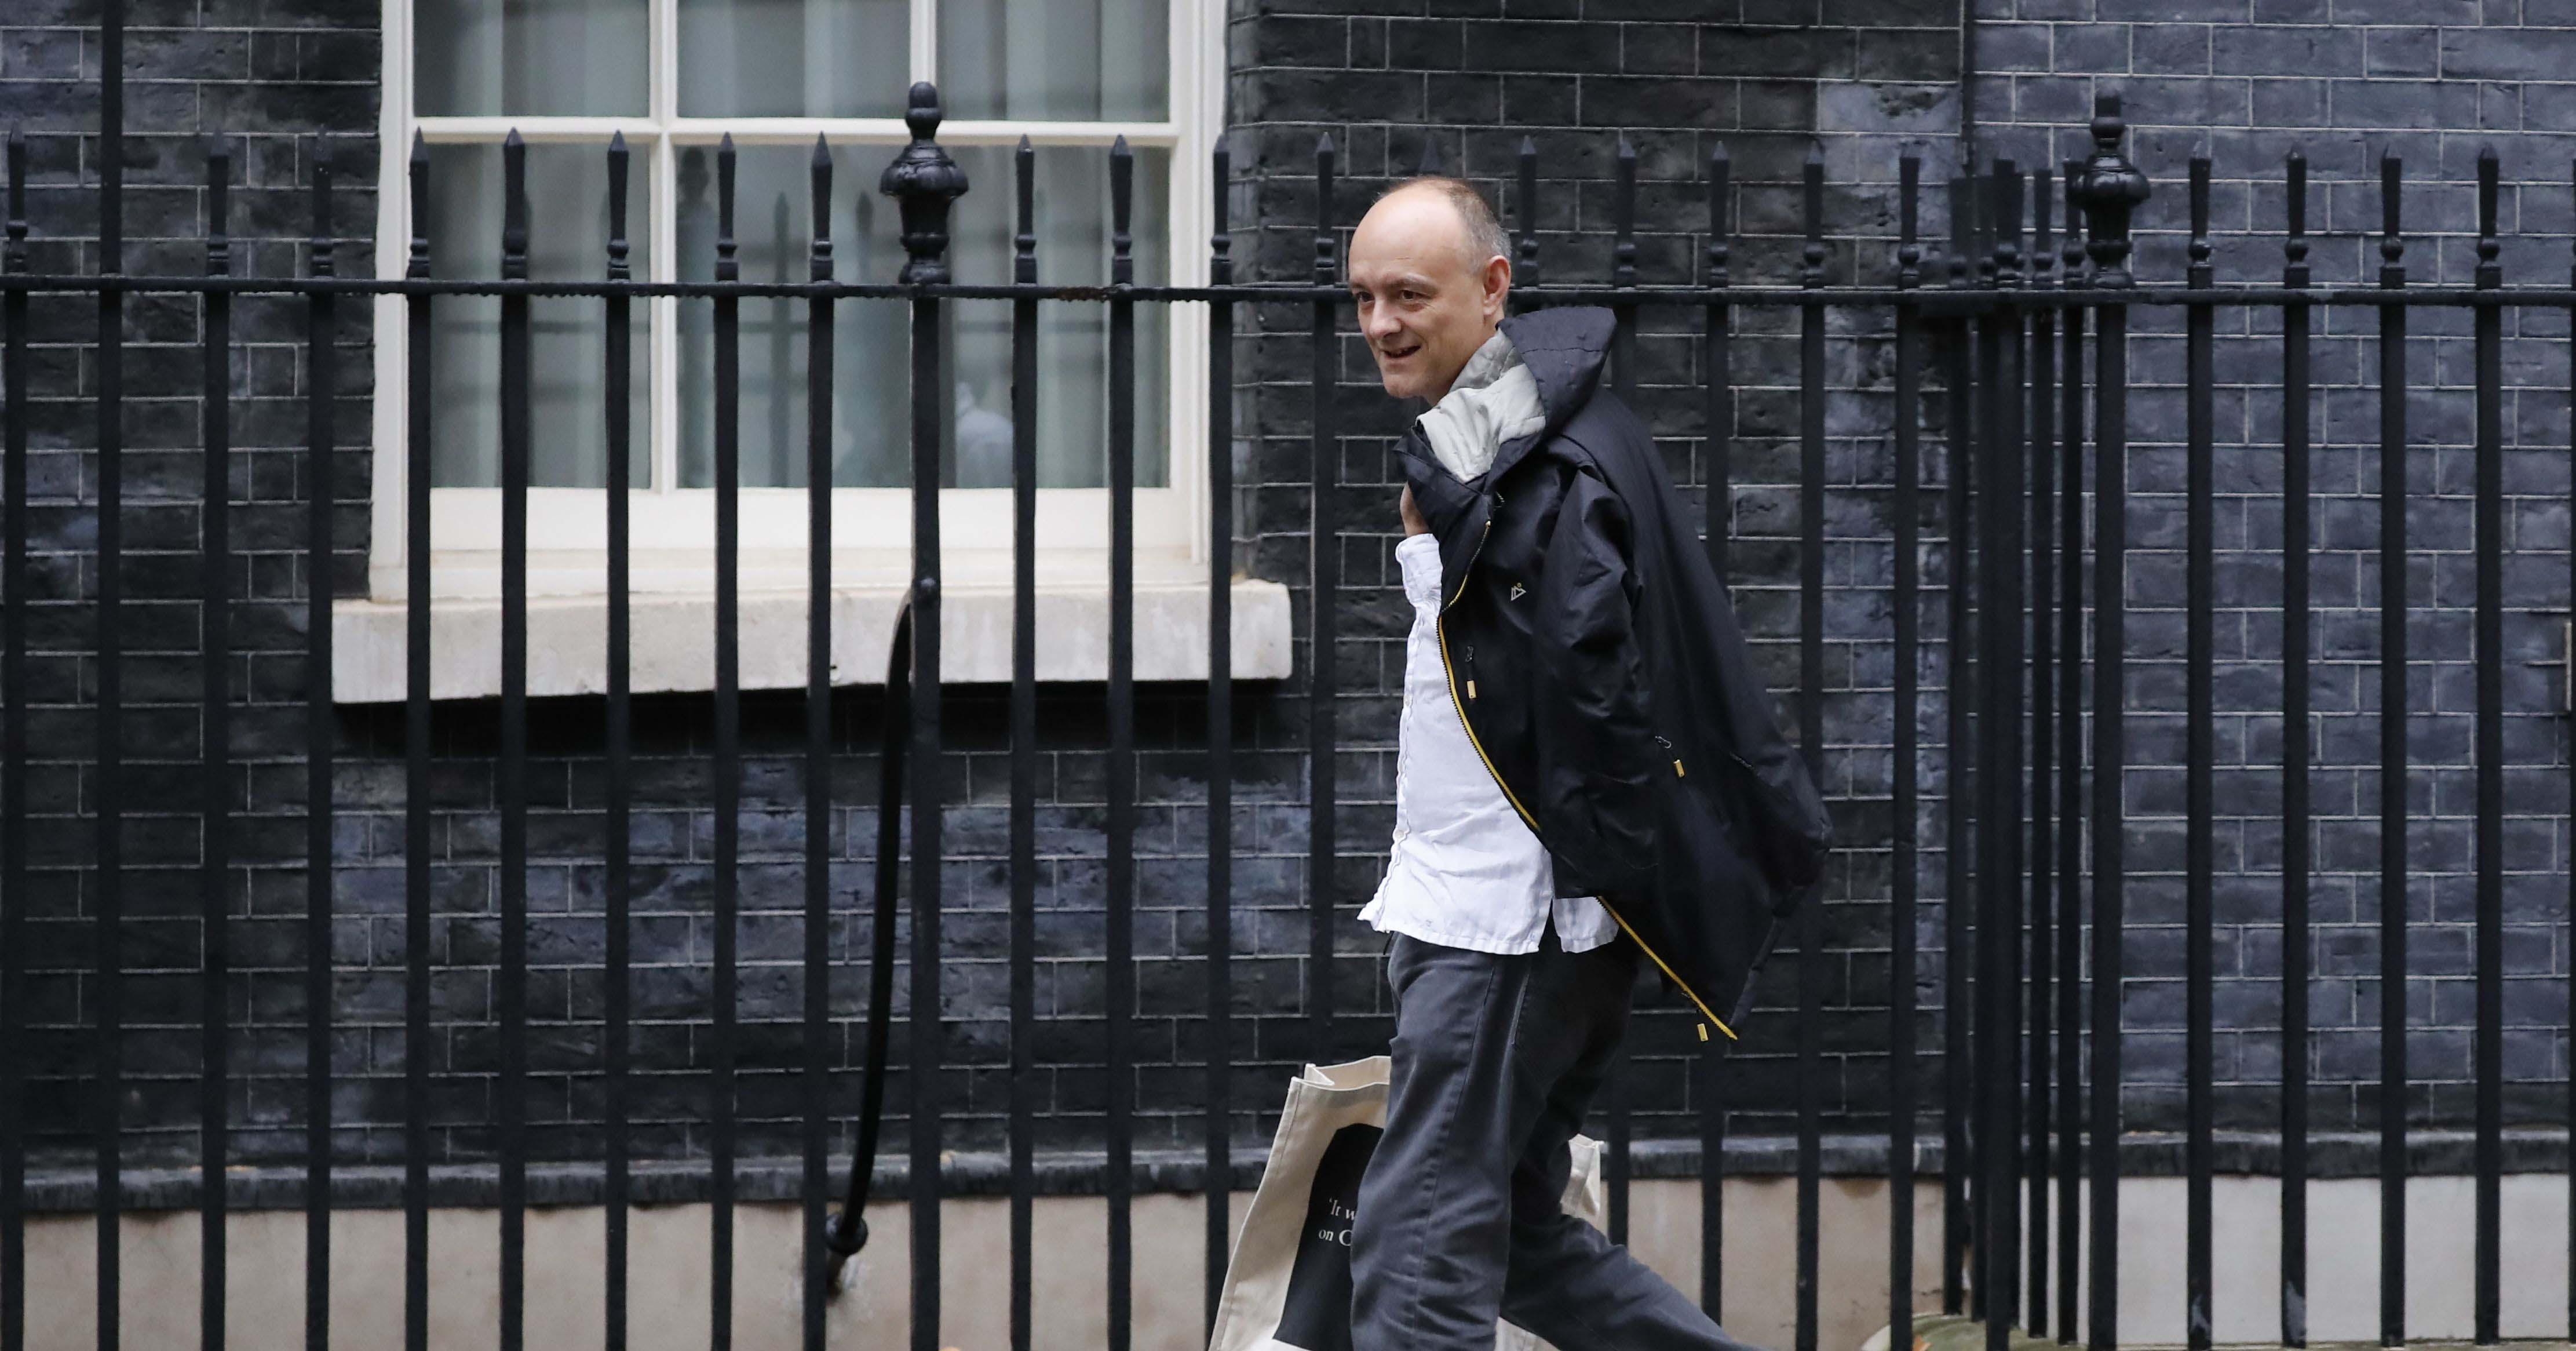 Dominic Cummings walking into No 10 Downing Street